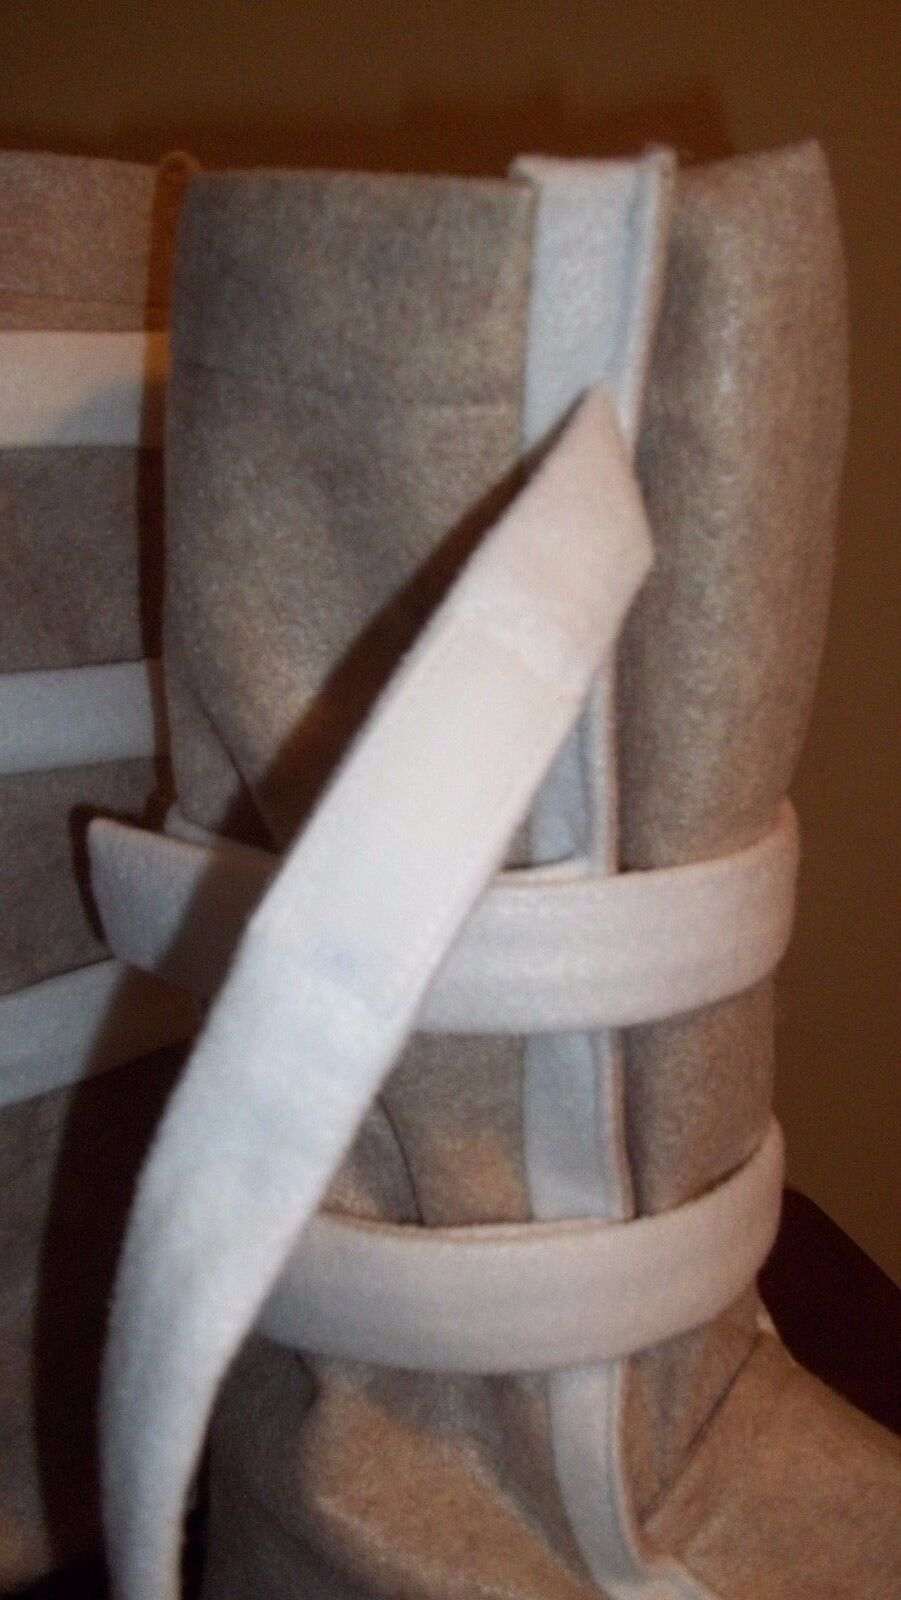 Hoth Snow Boots Shoe Covers For A Luke Skywalker Or Han Solo Costume Cosplay - $80.00